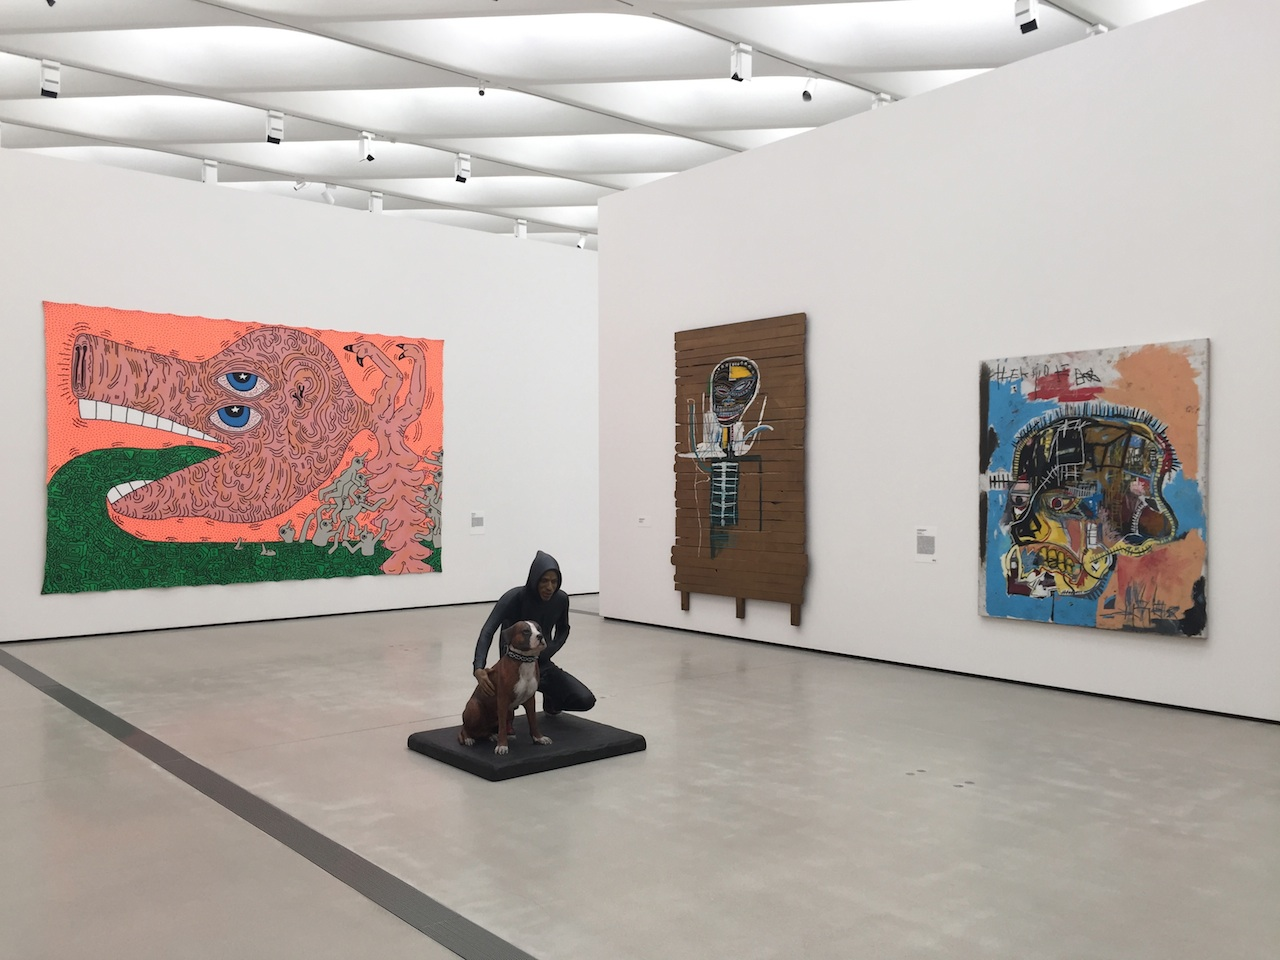 Works by Keith Haring, John Ahearn, and Jean-Michel Basquiat.